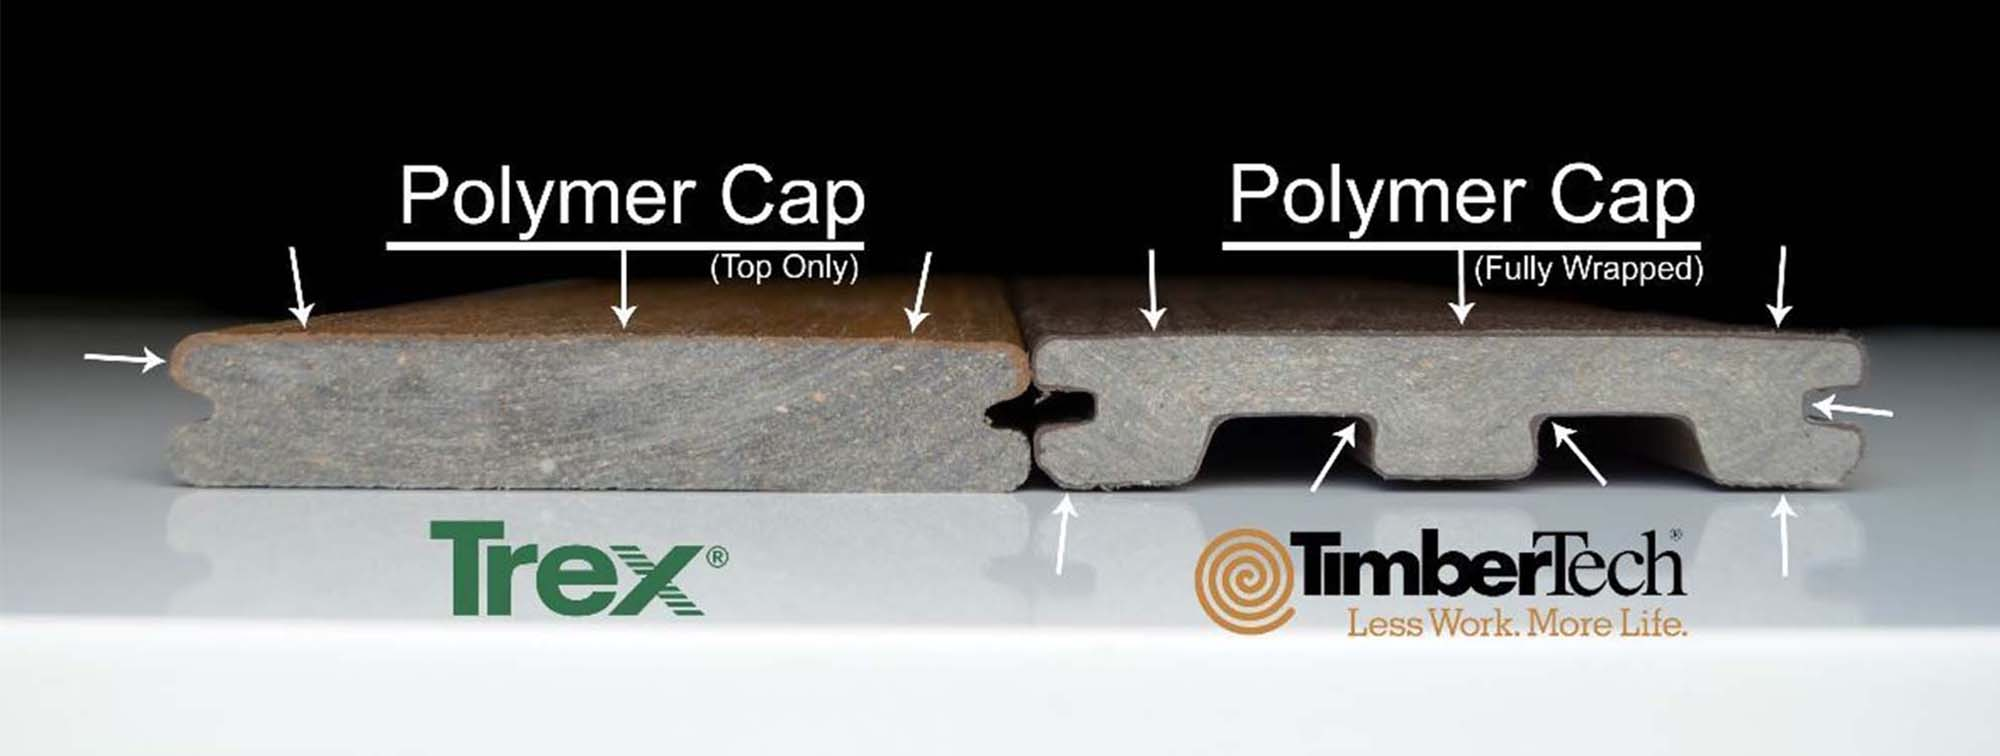 Trex vs Timbertech cap comparison chart